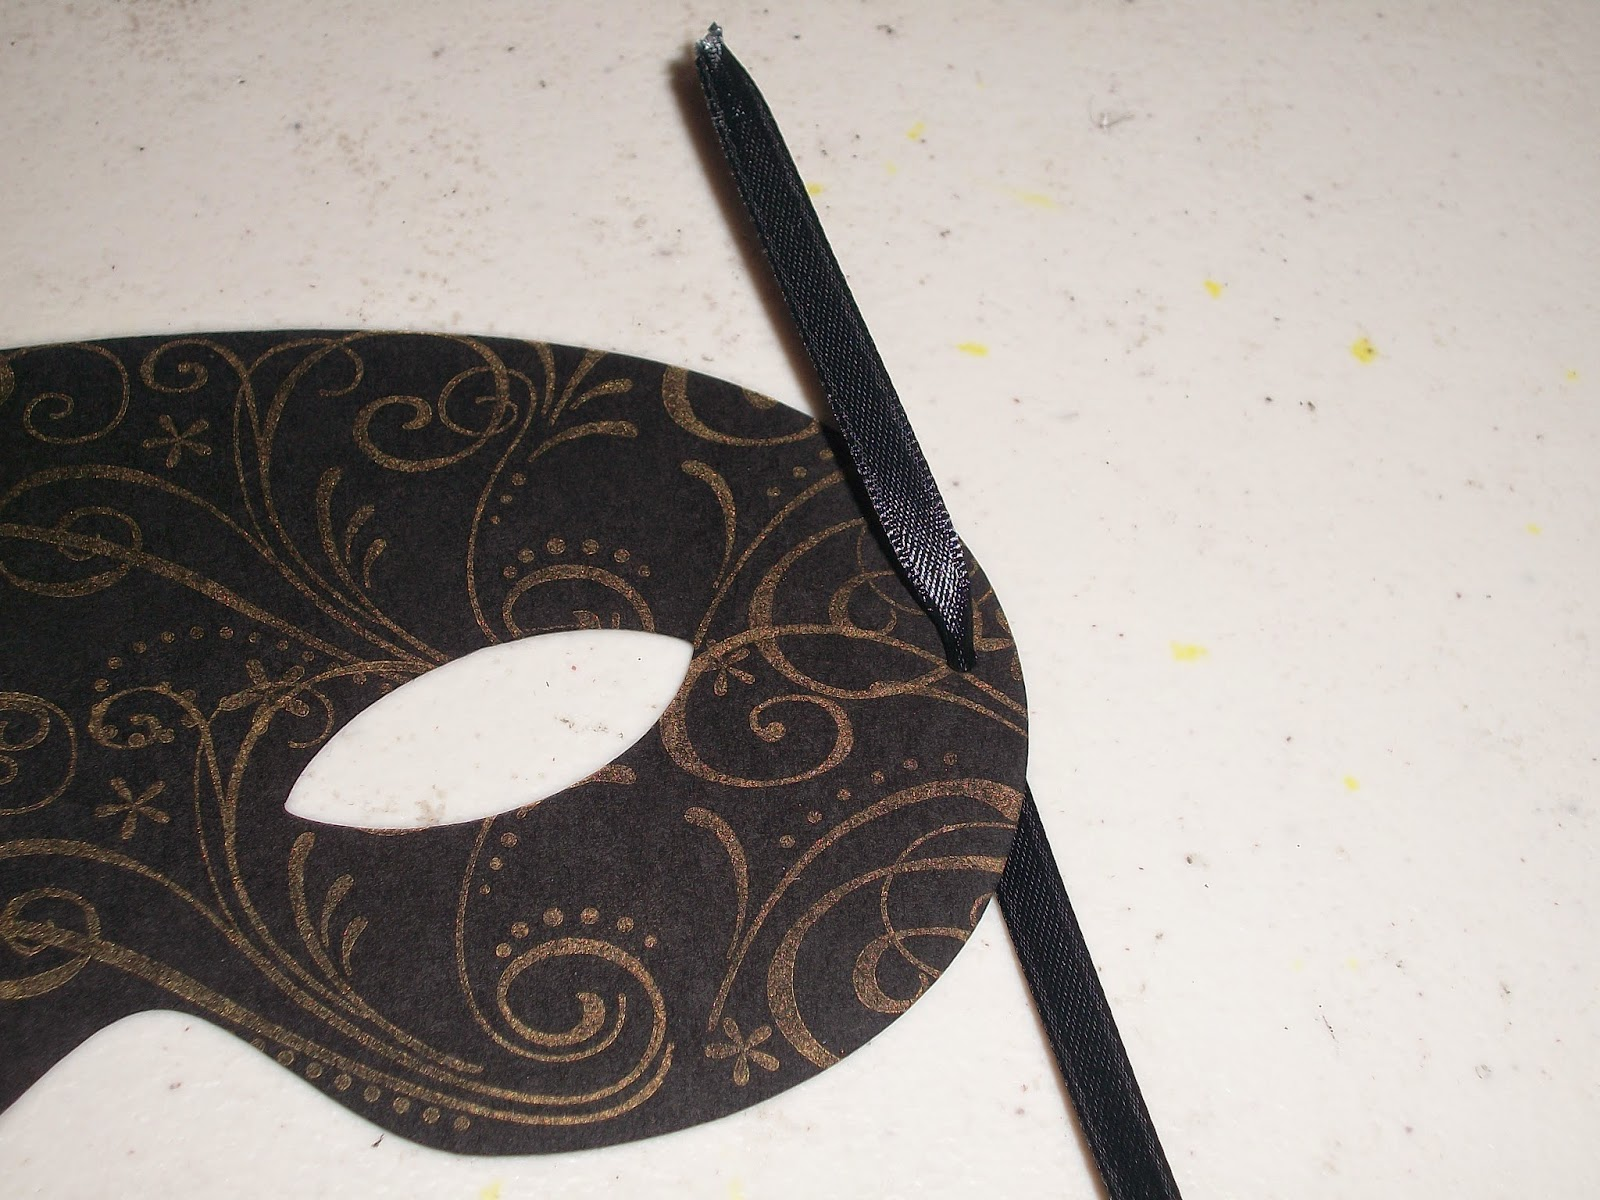 Punch a tiny hole on each side of mask and add ribbon